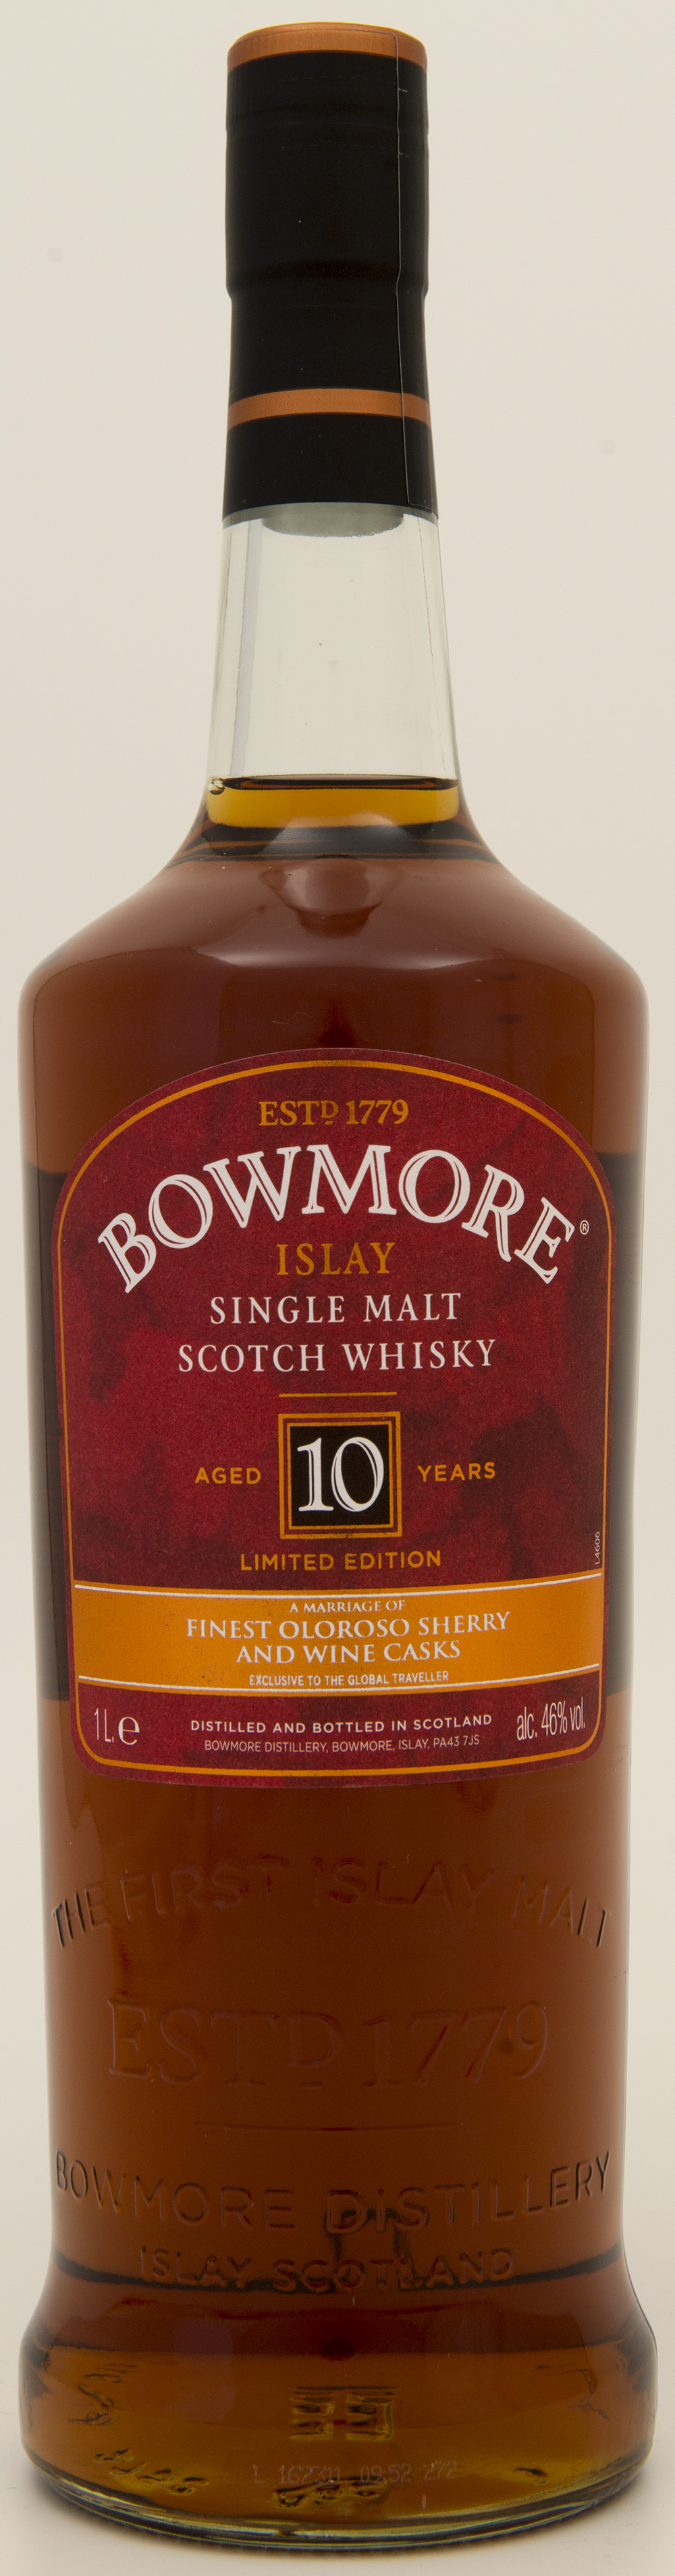 Billede: DSC_1377 - Bowmore 10 Limited edition Oloroso and Wine Casks - bottle front.jpg